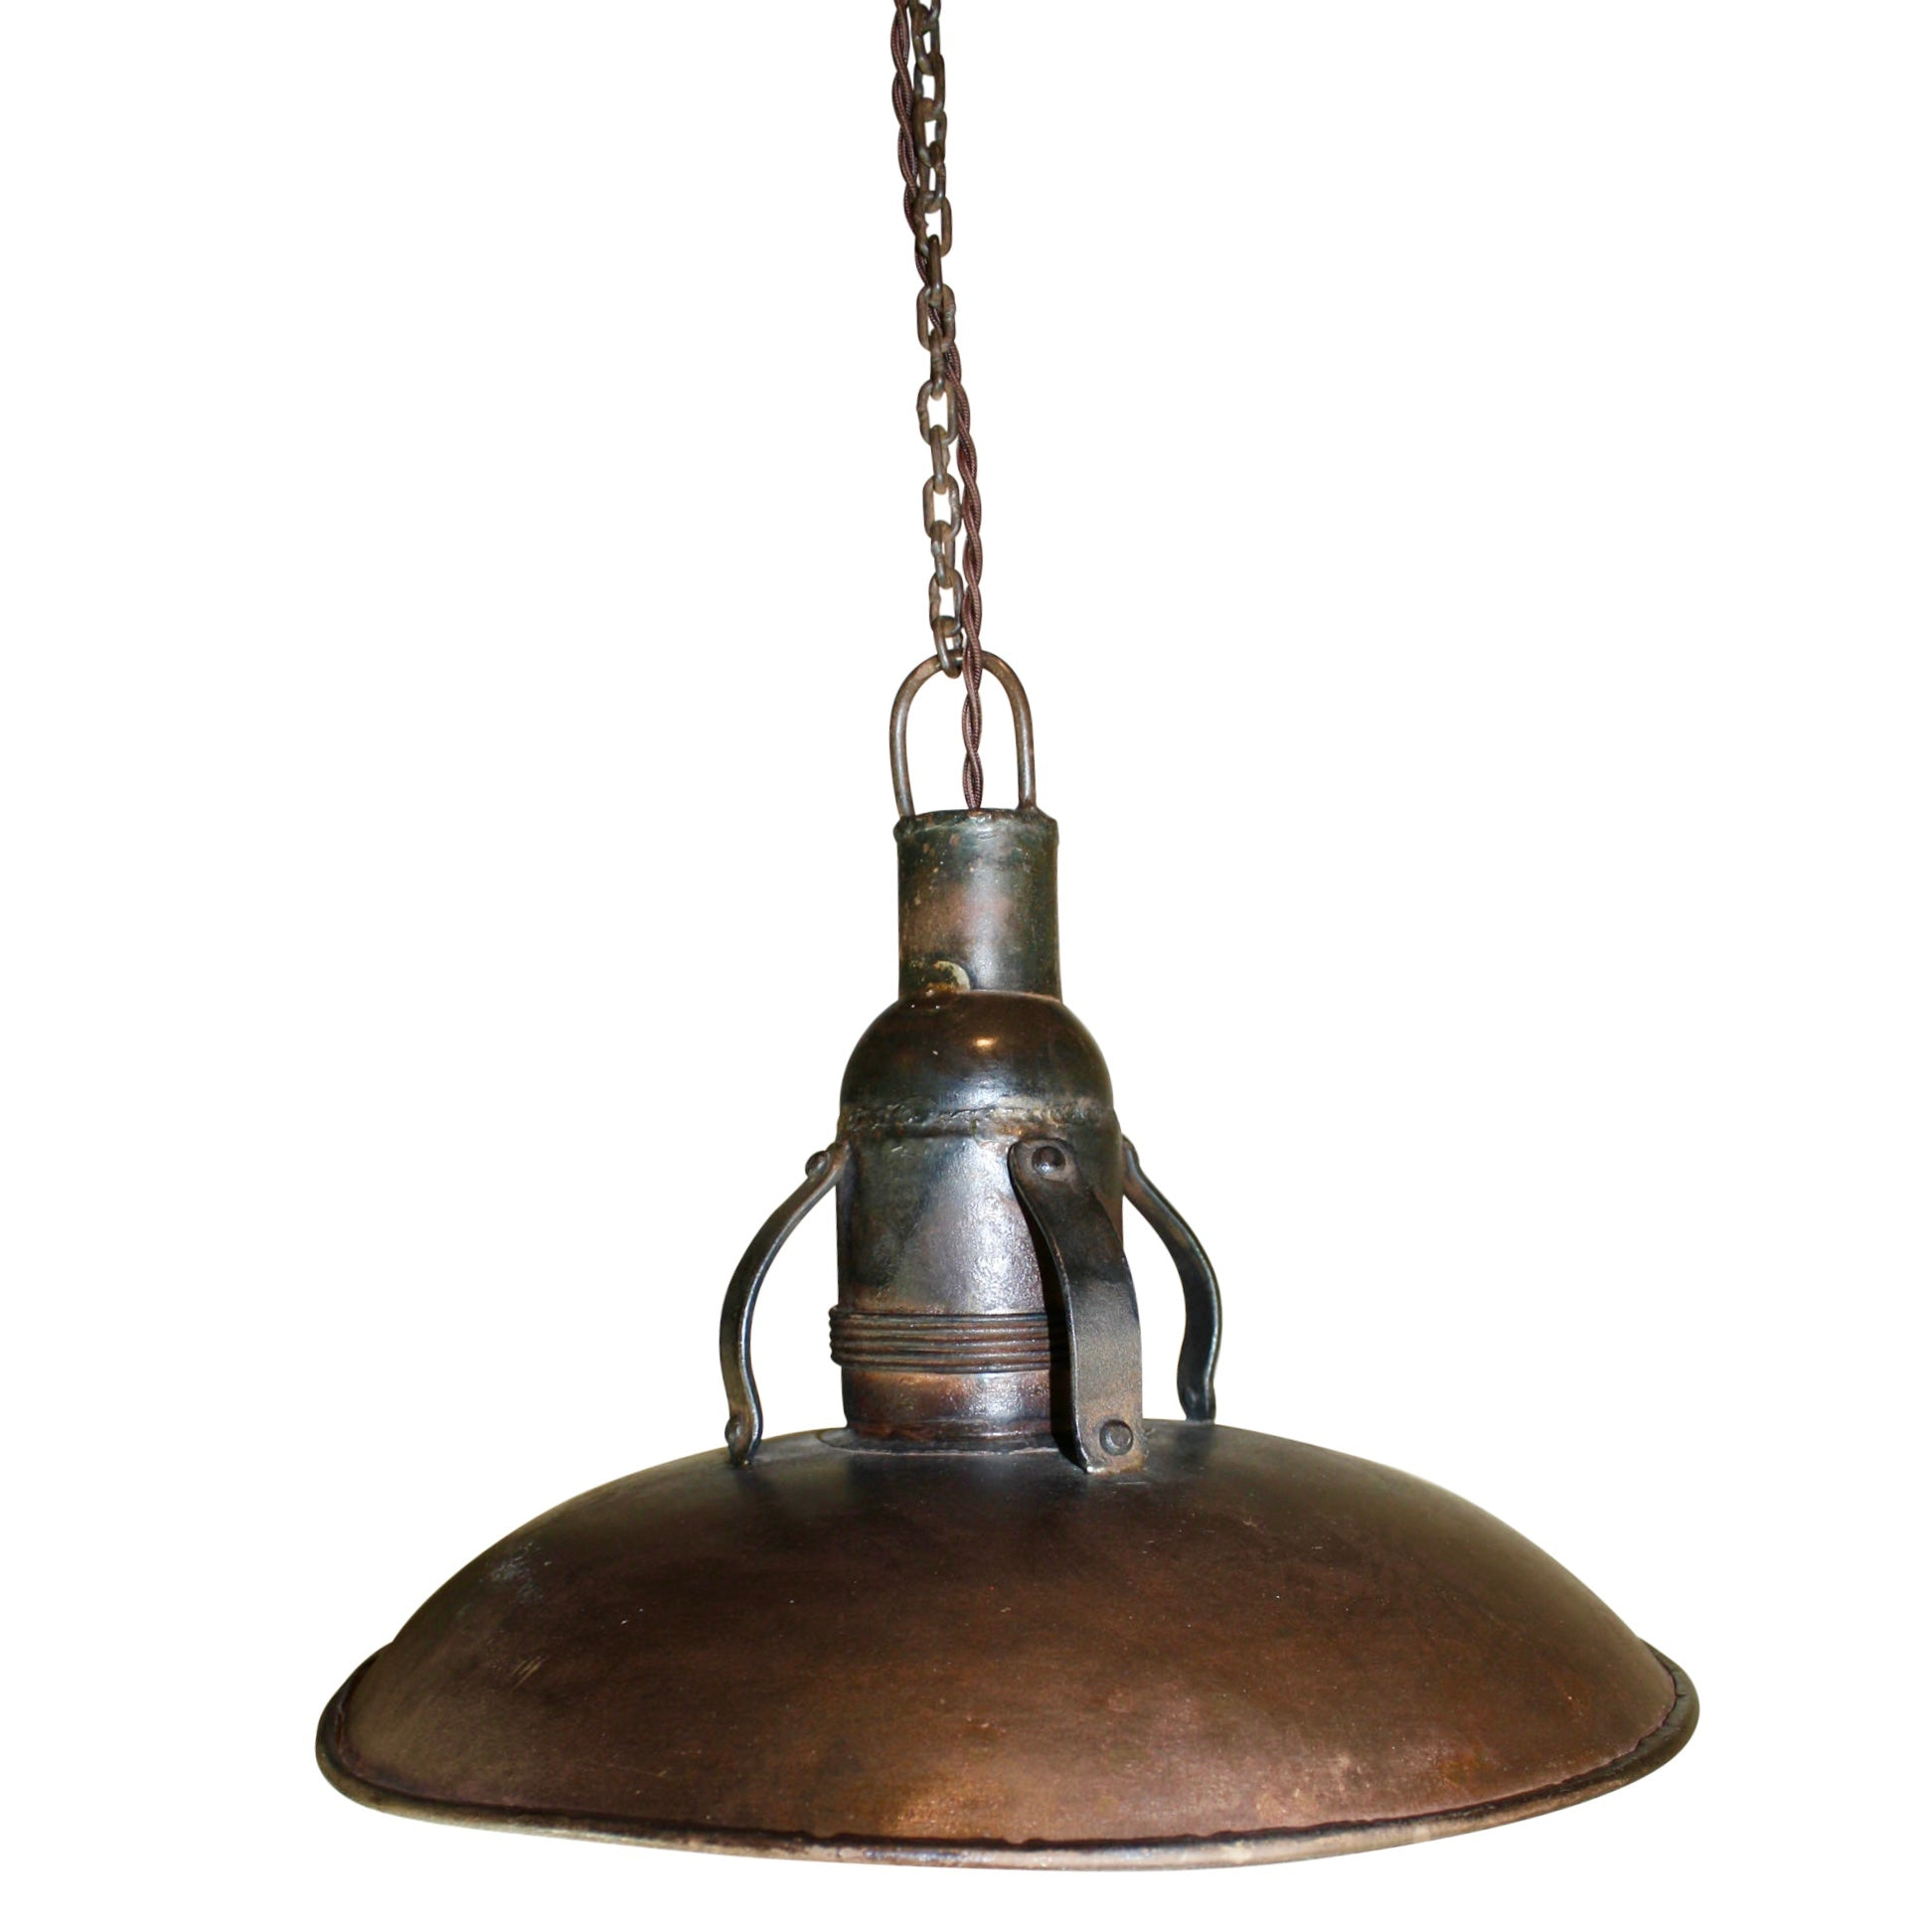 Industrial Metal Pendant Light with Chain